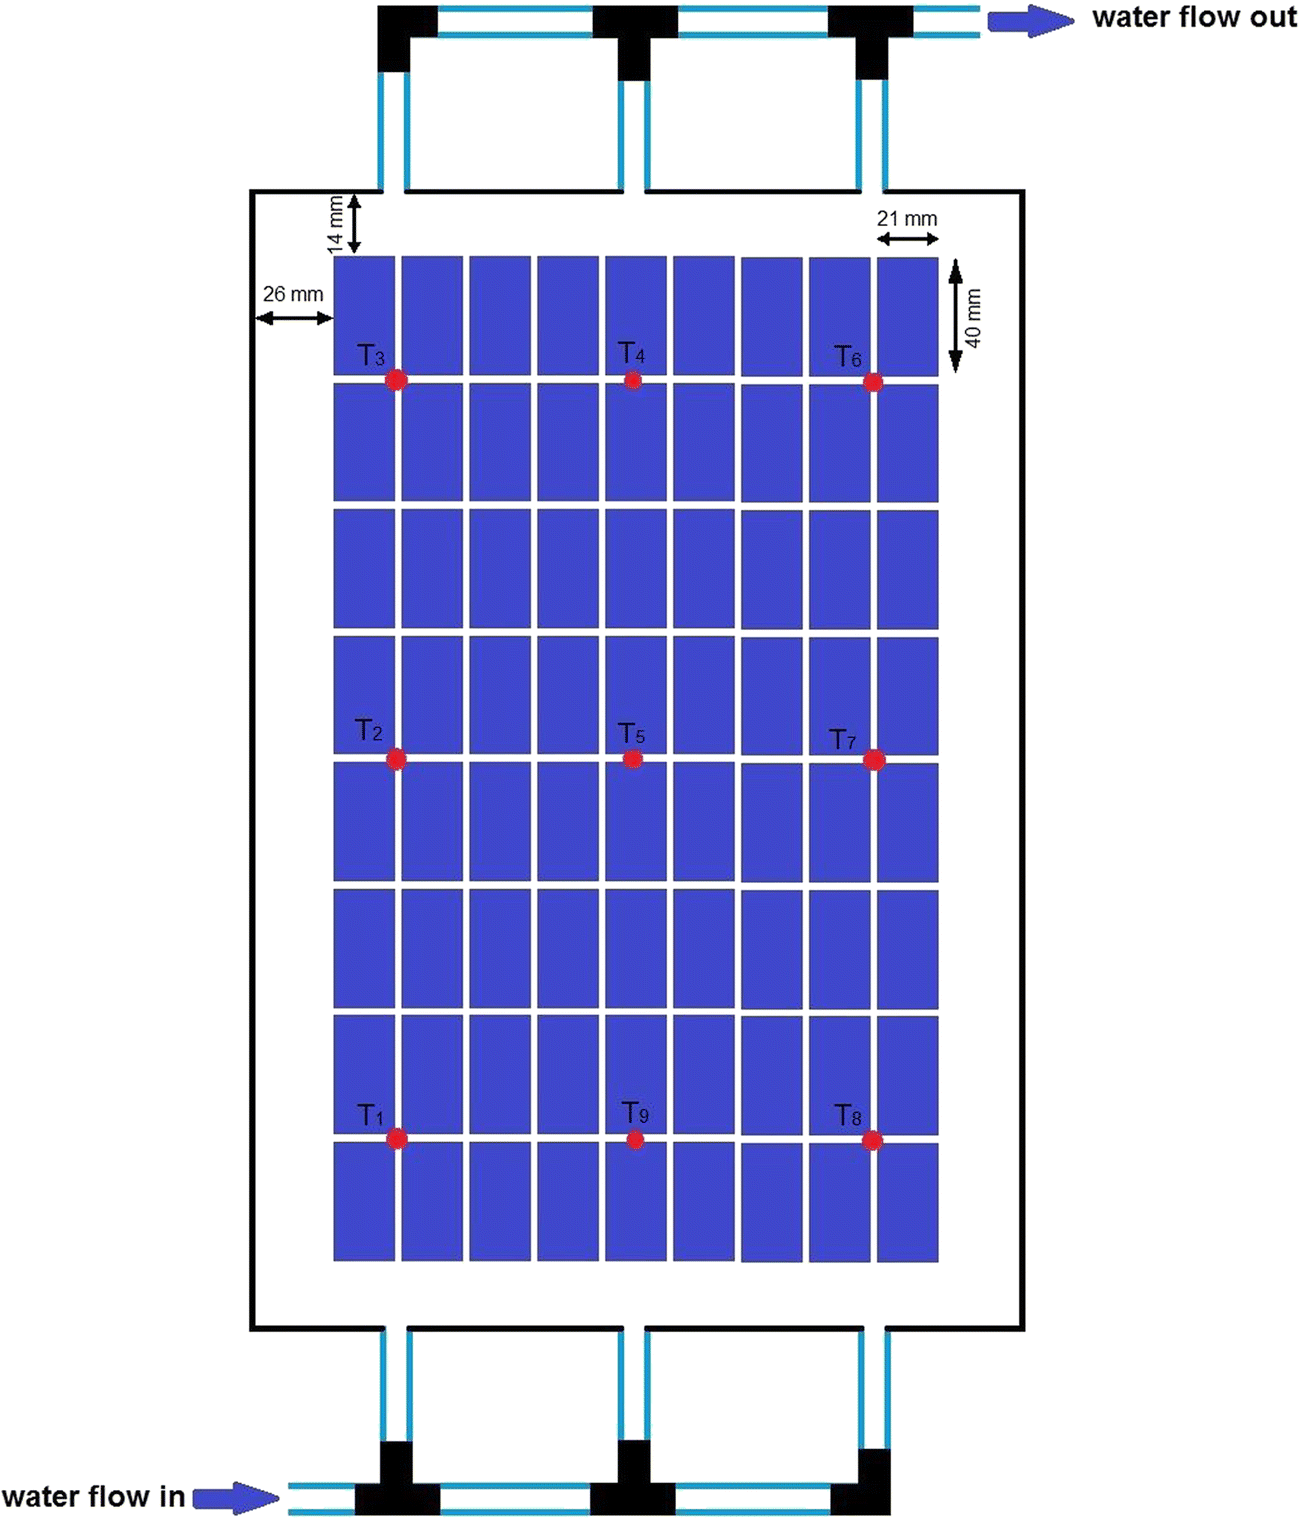 Heat transfer enhancement in a hybrid PV cell-cooling tower